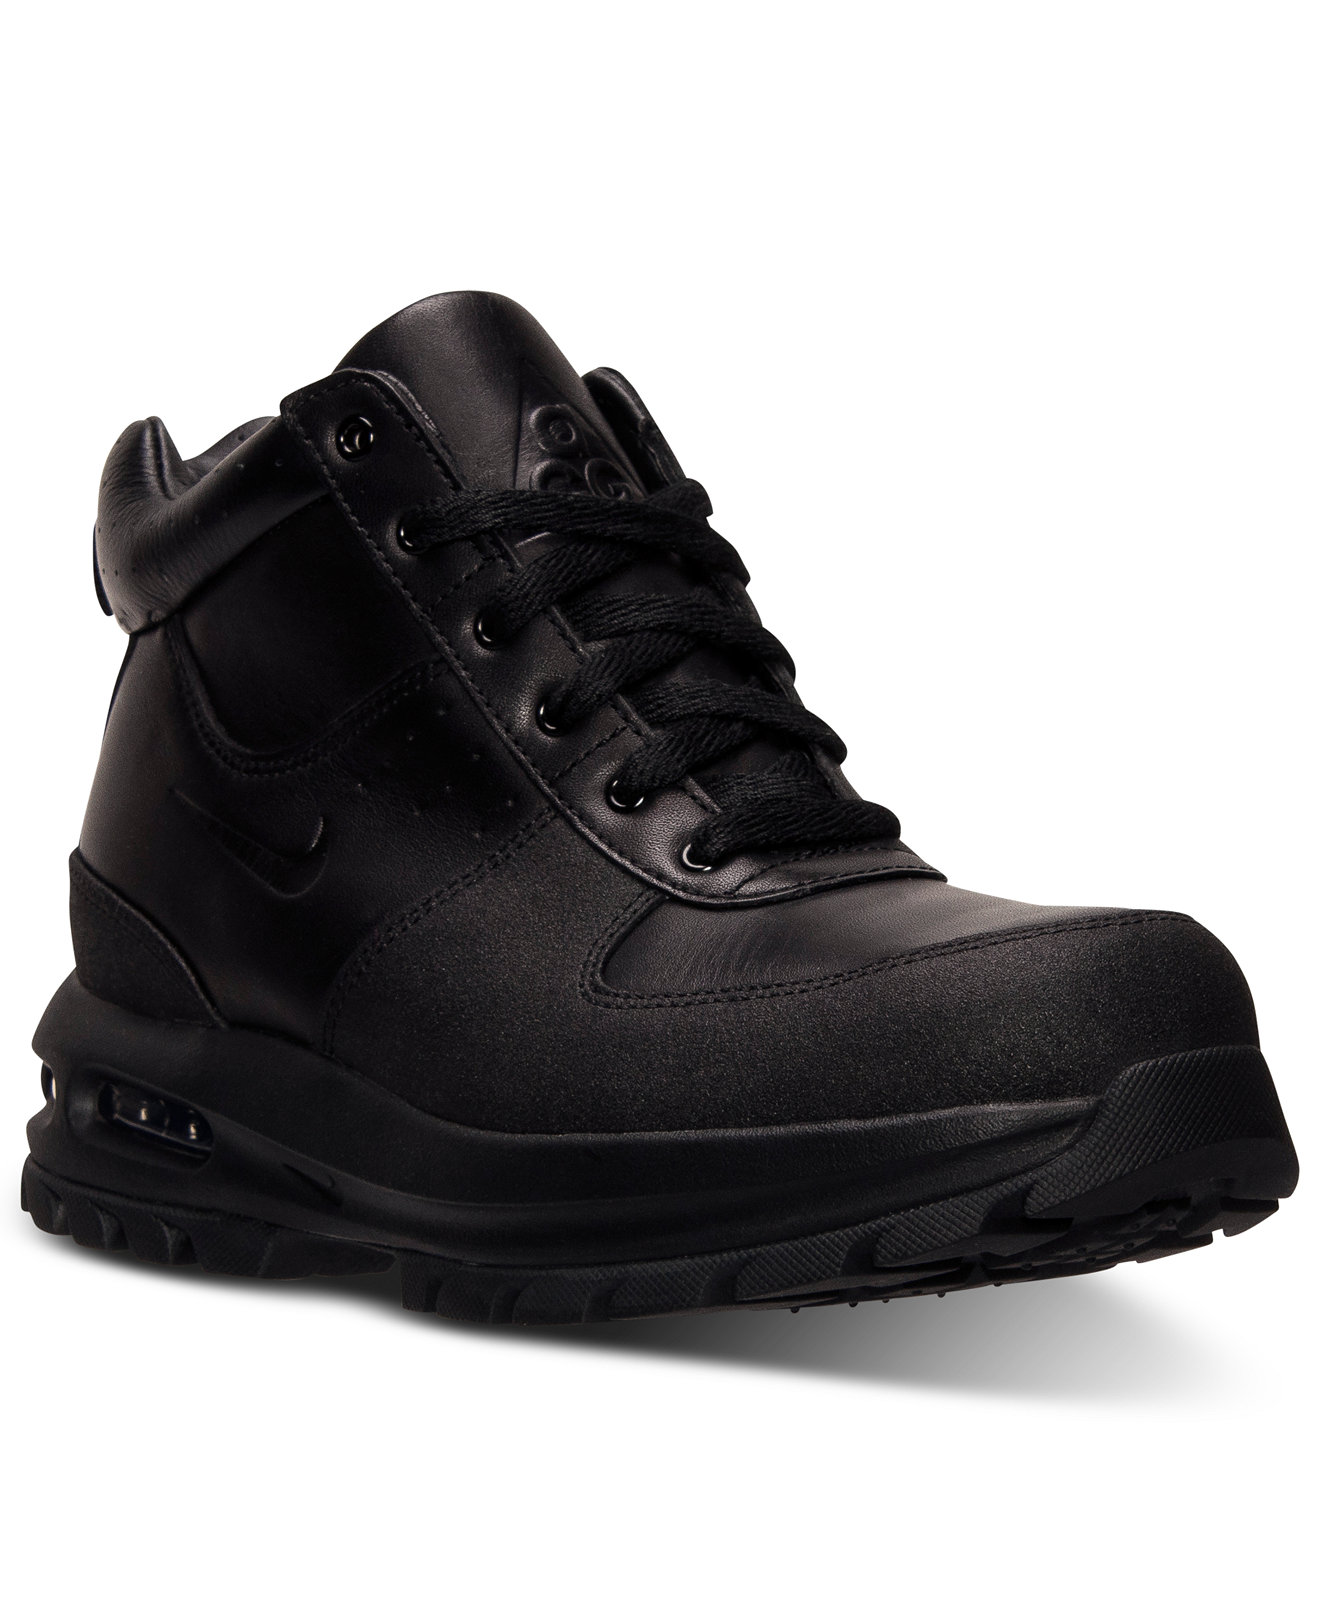 9cae7ed8da1cdb ... black nike acg air max goadome 6 boot knives . ...